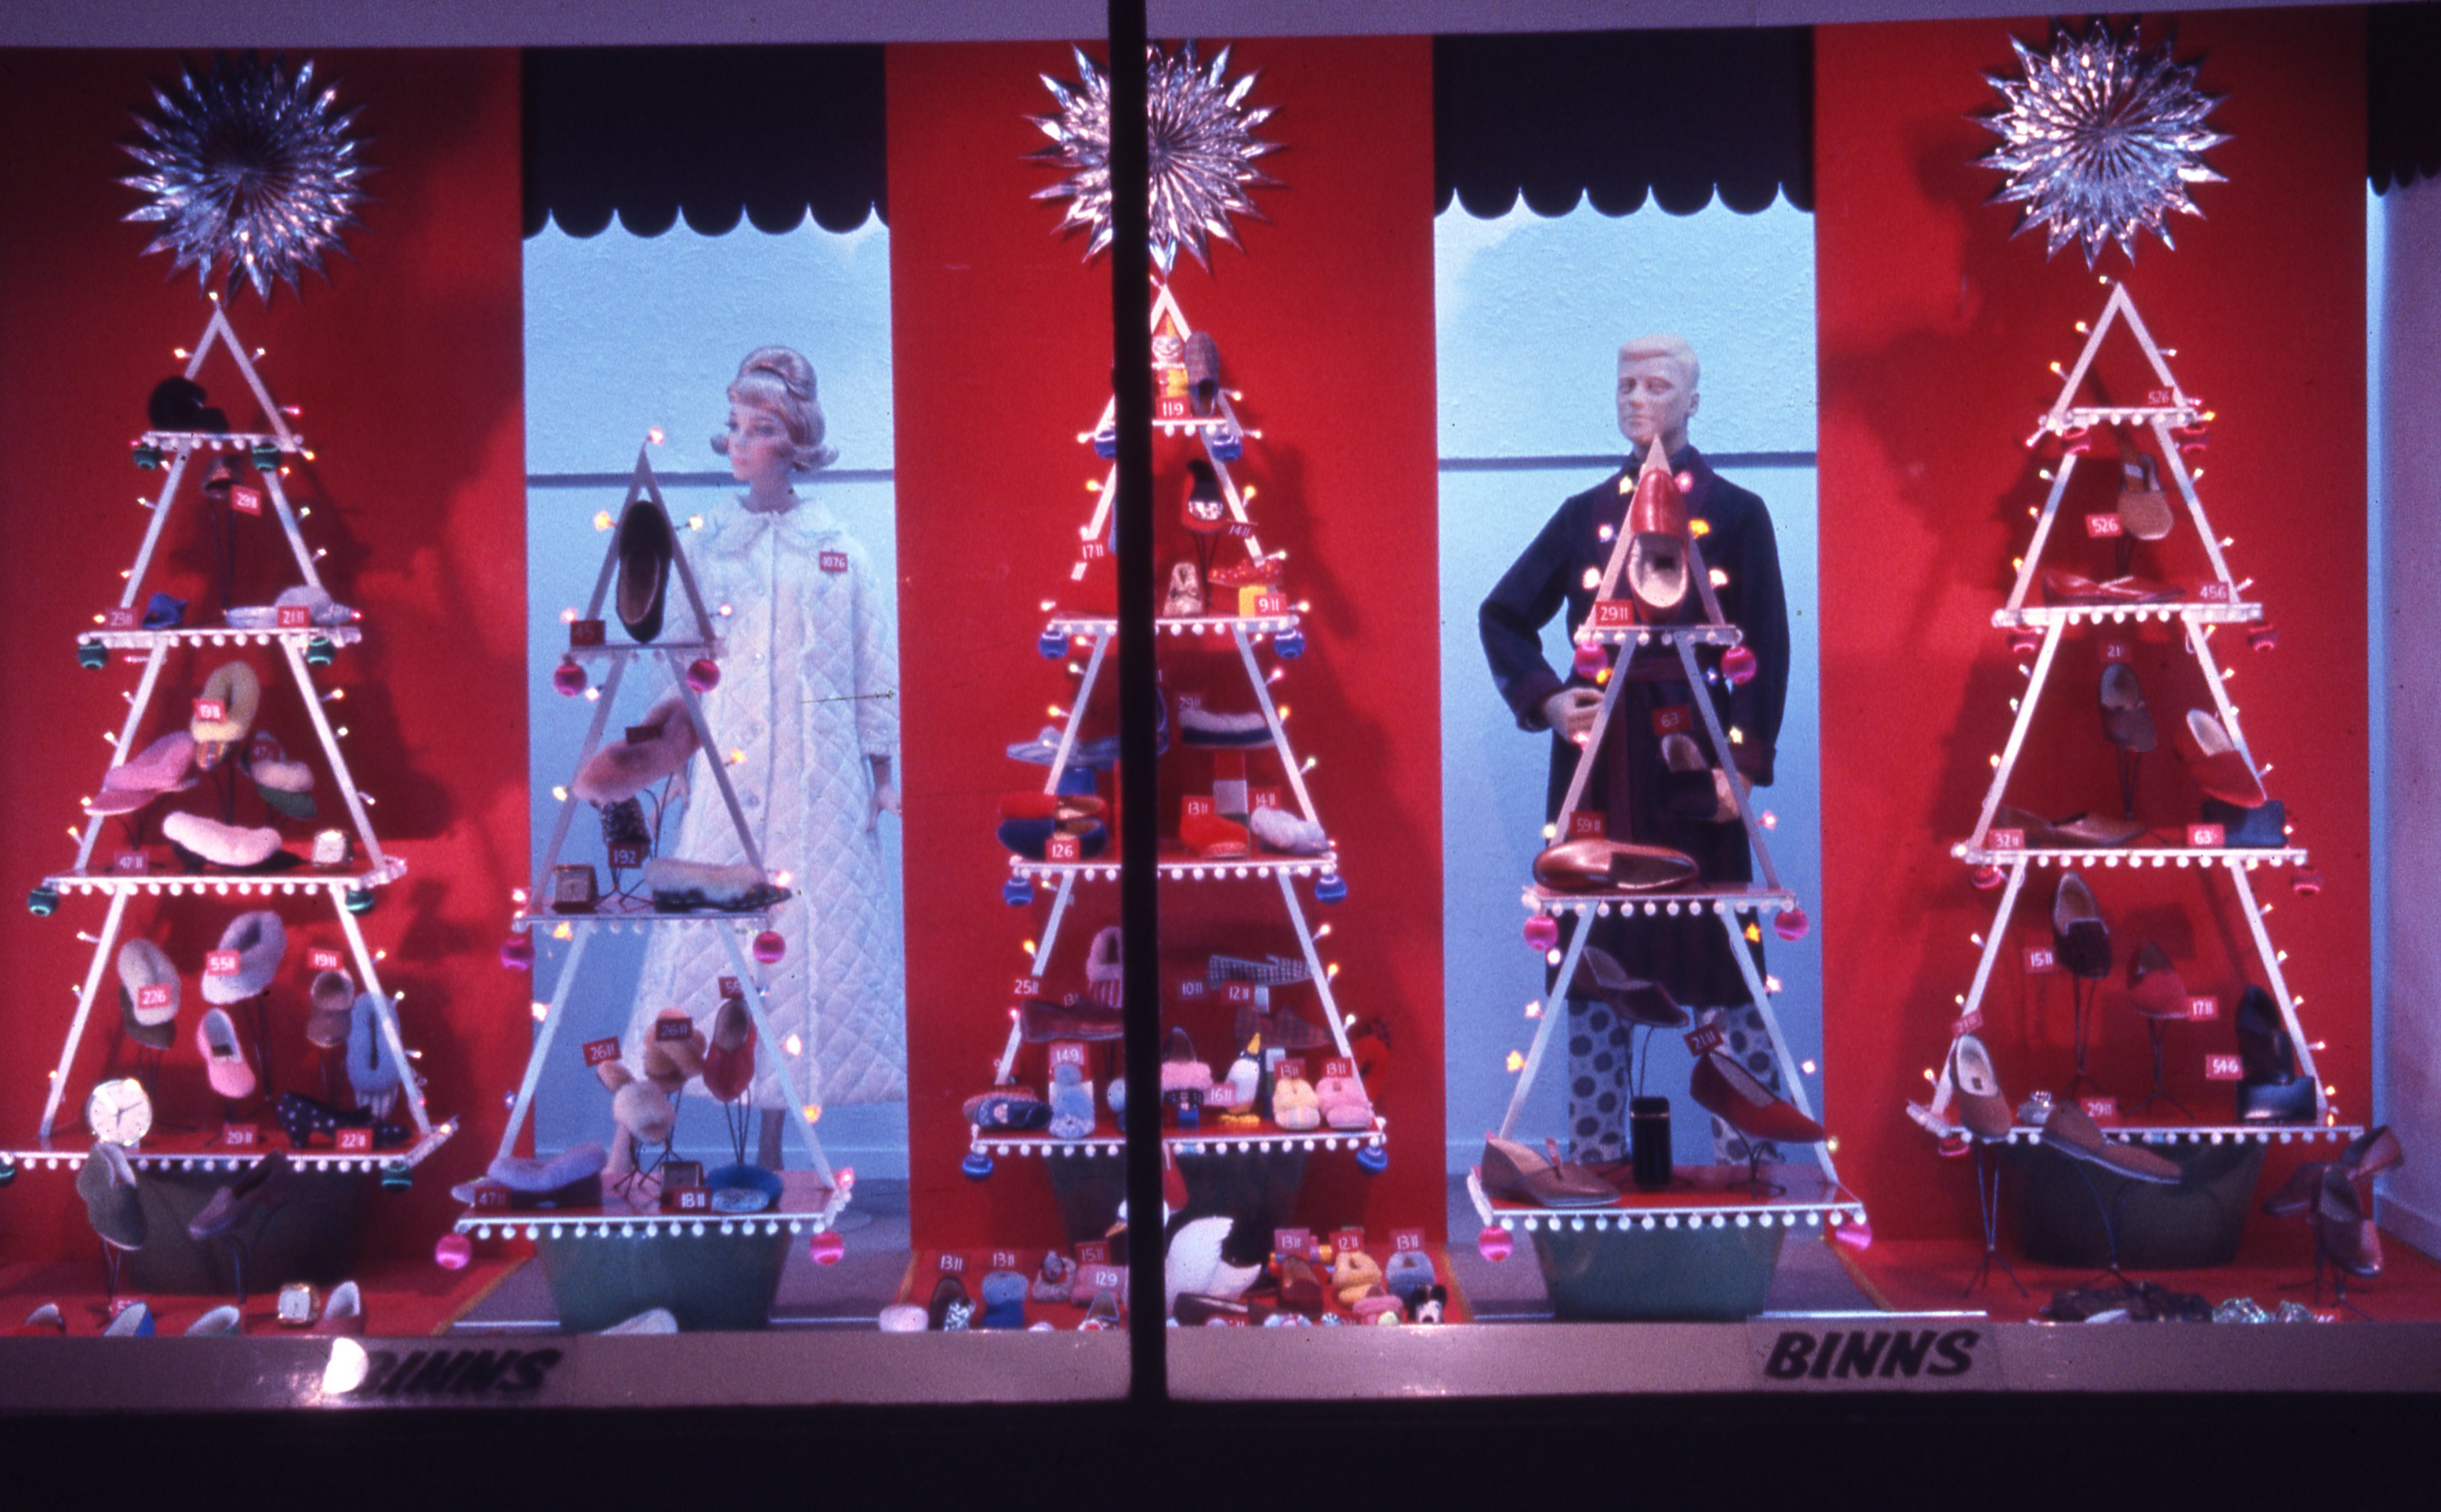 This is a night time view of Binns department store Christmas window in Newcastle upon Tyne. This is a 35mm slide. It was taken in 1965.